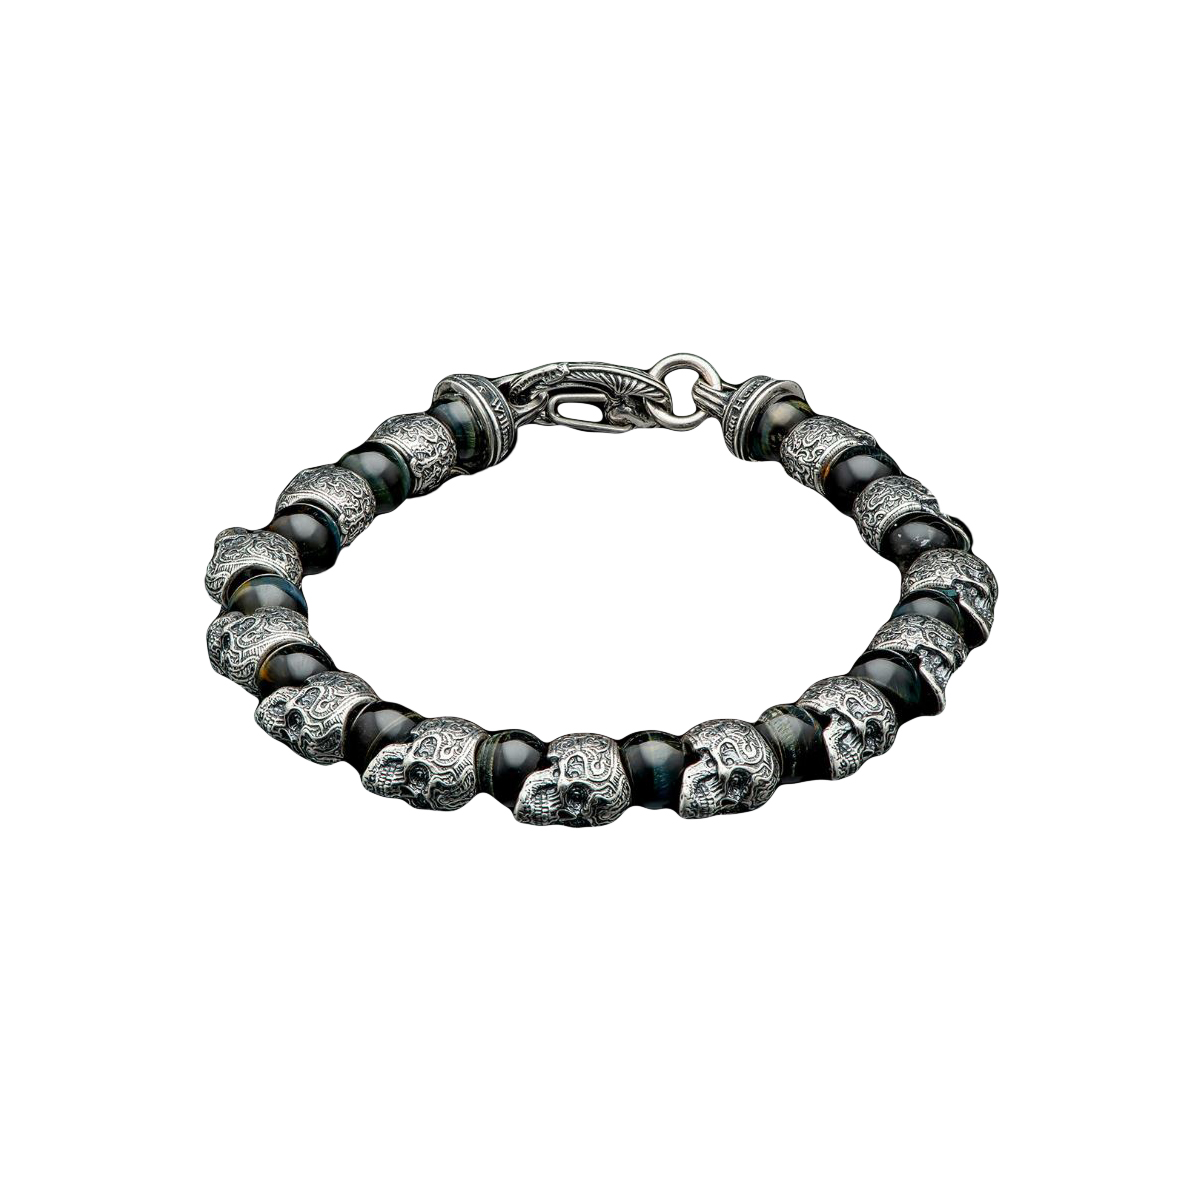 William Henry Hawkeye Skull Bracelet